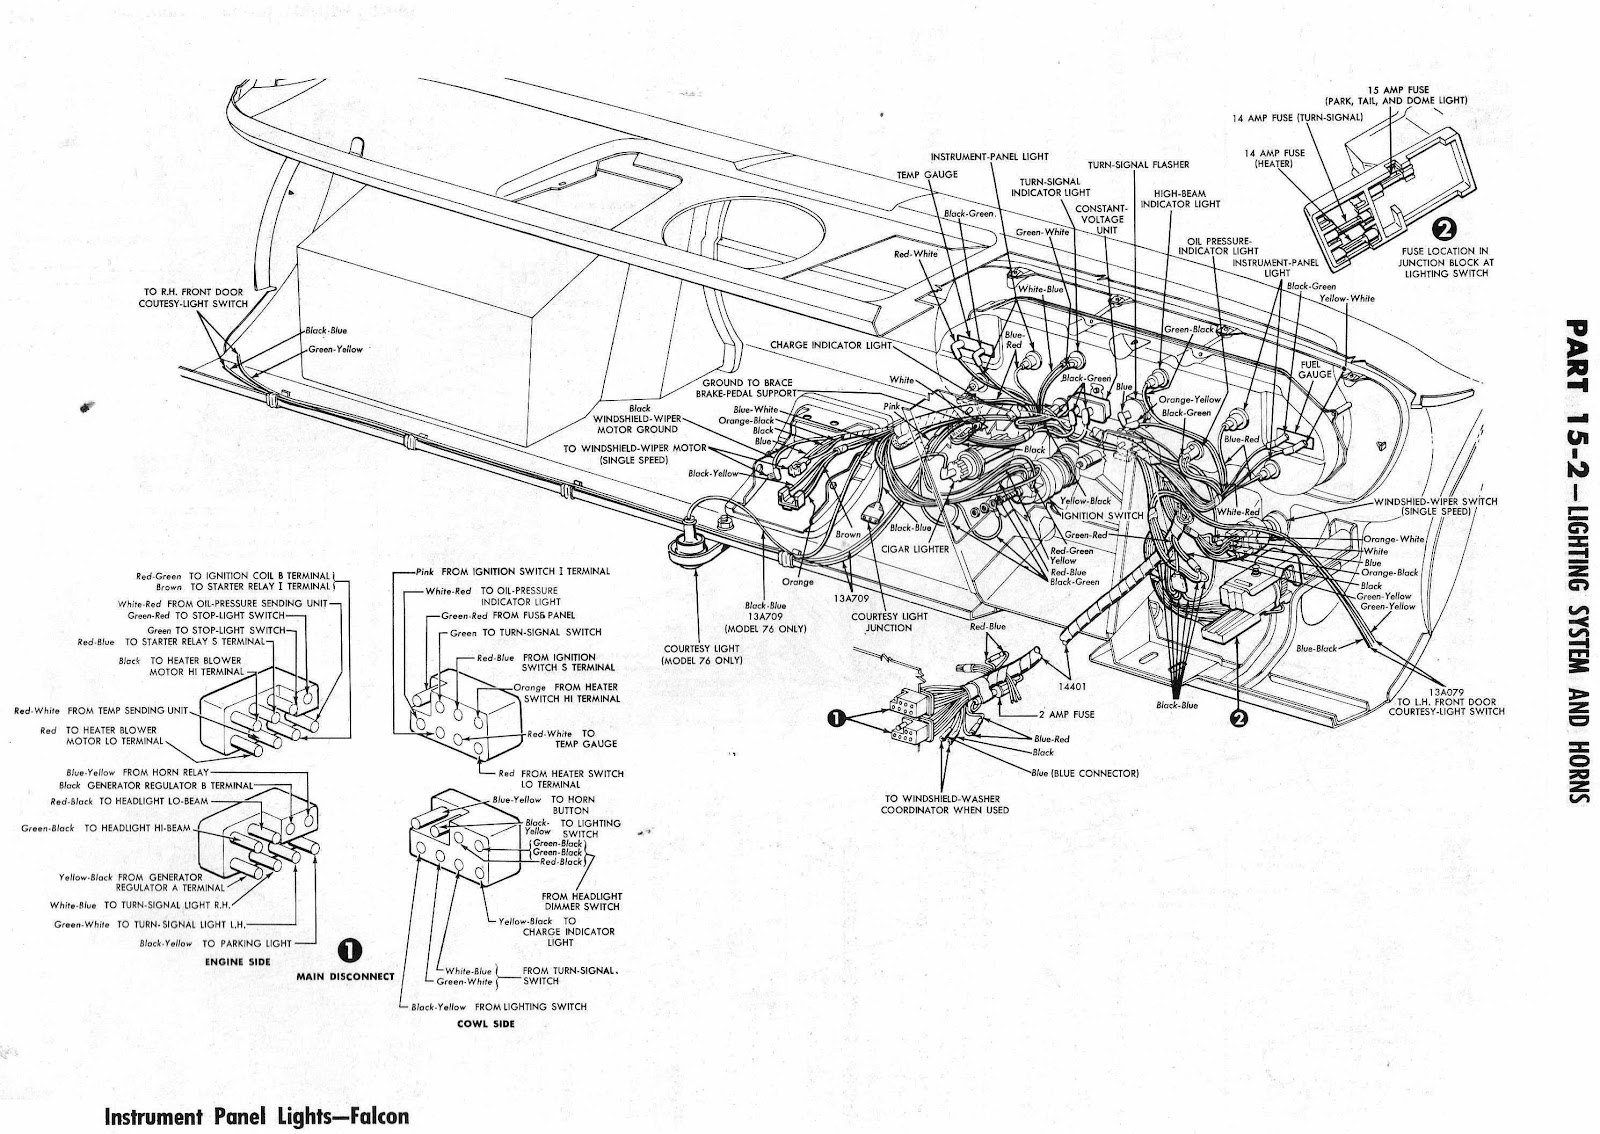 Ford+Falcon+1964+Lighting+System+and+Horns+Wiring+Diagram au falcon wiring diagram falcon guide \u2022 wiring diagrams j squared co  at webbmarketing.co